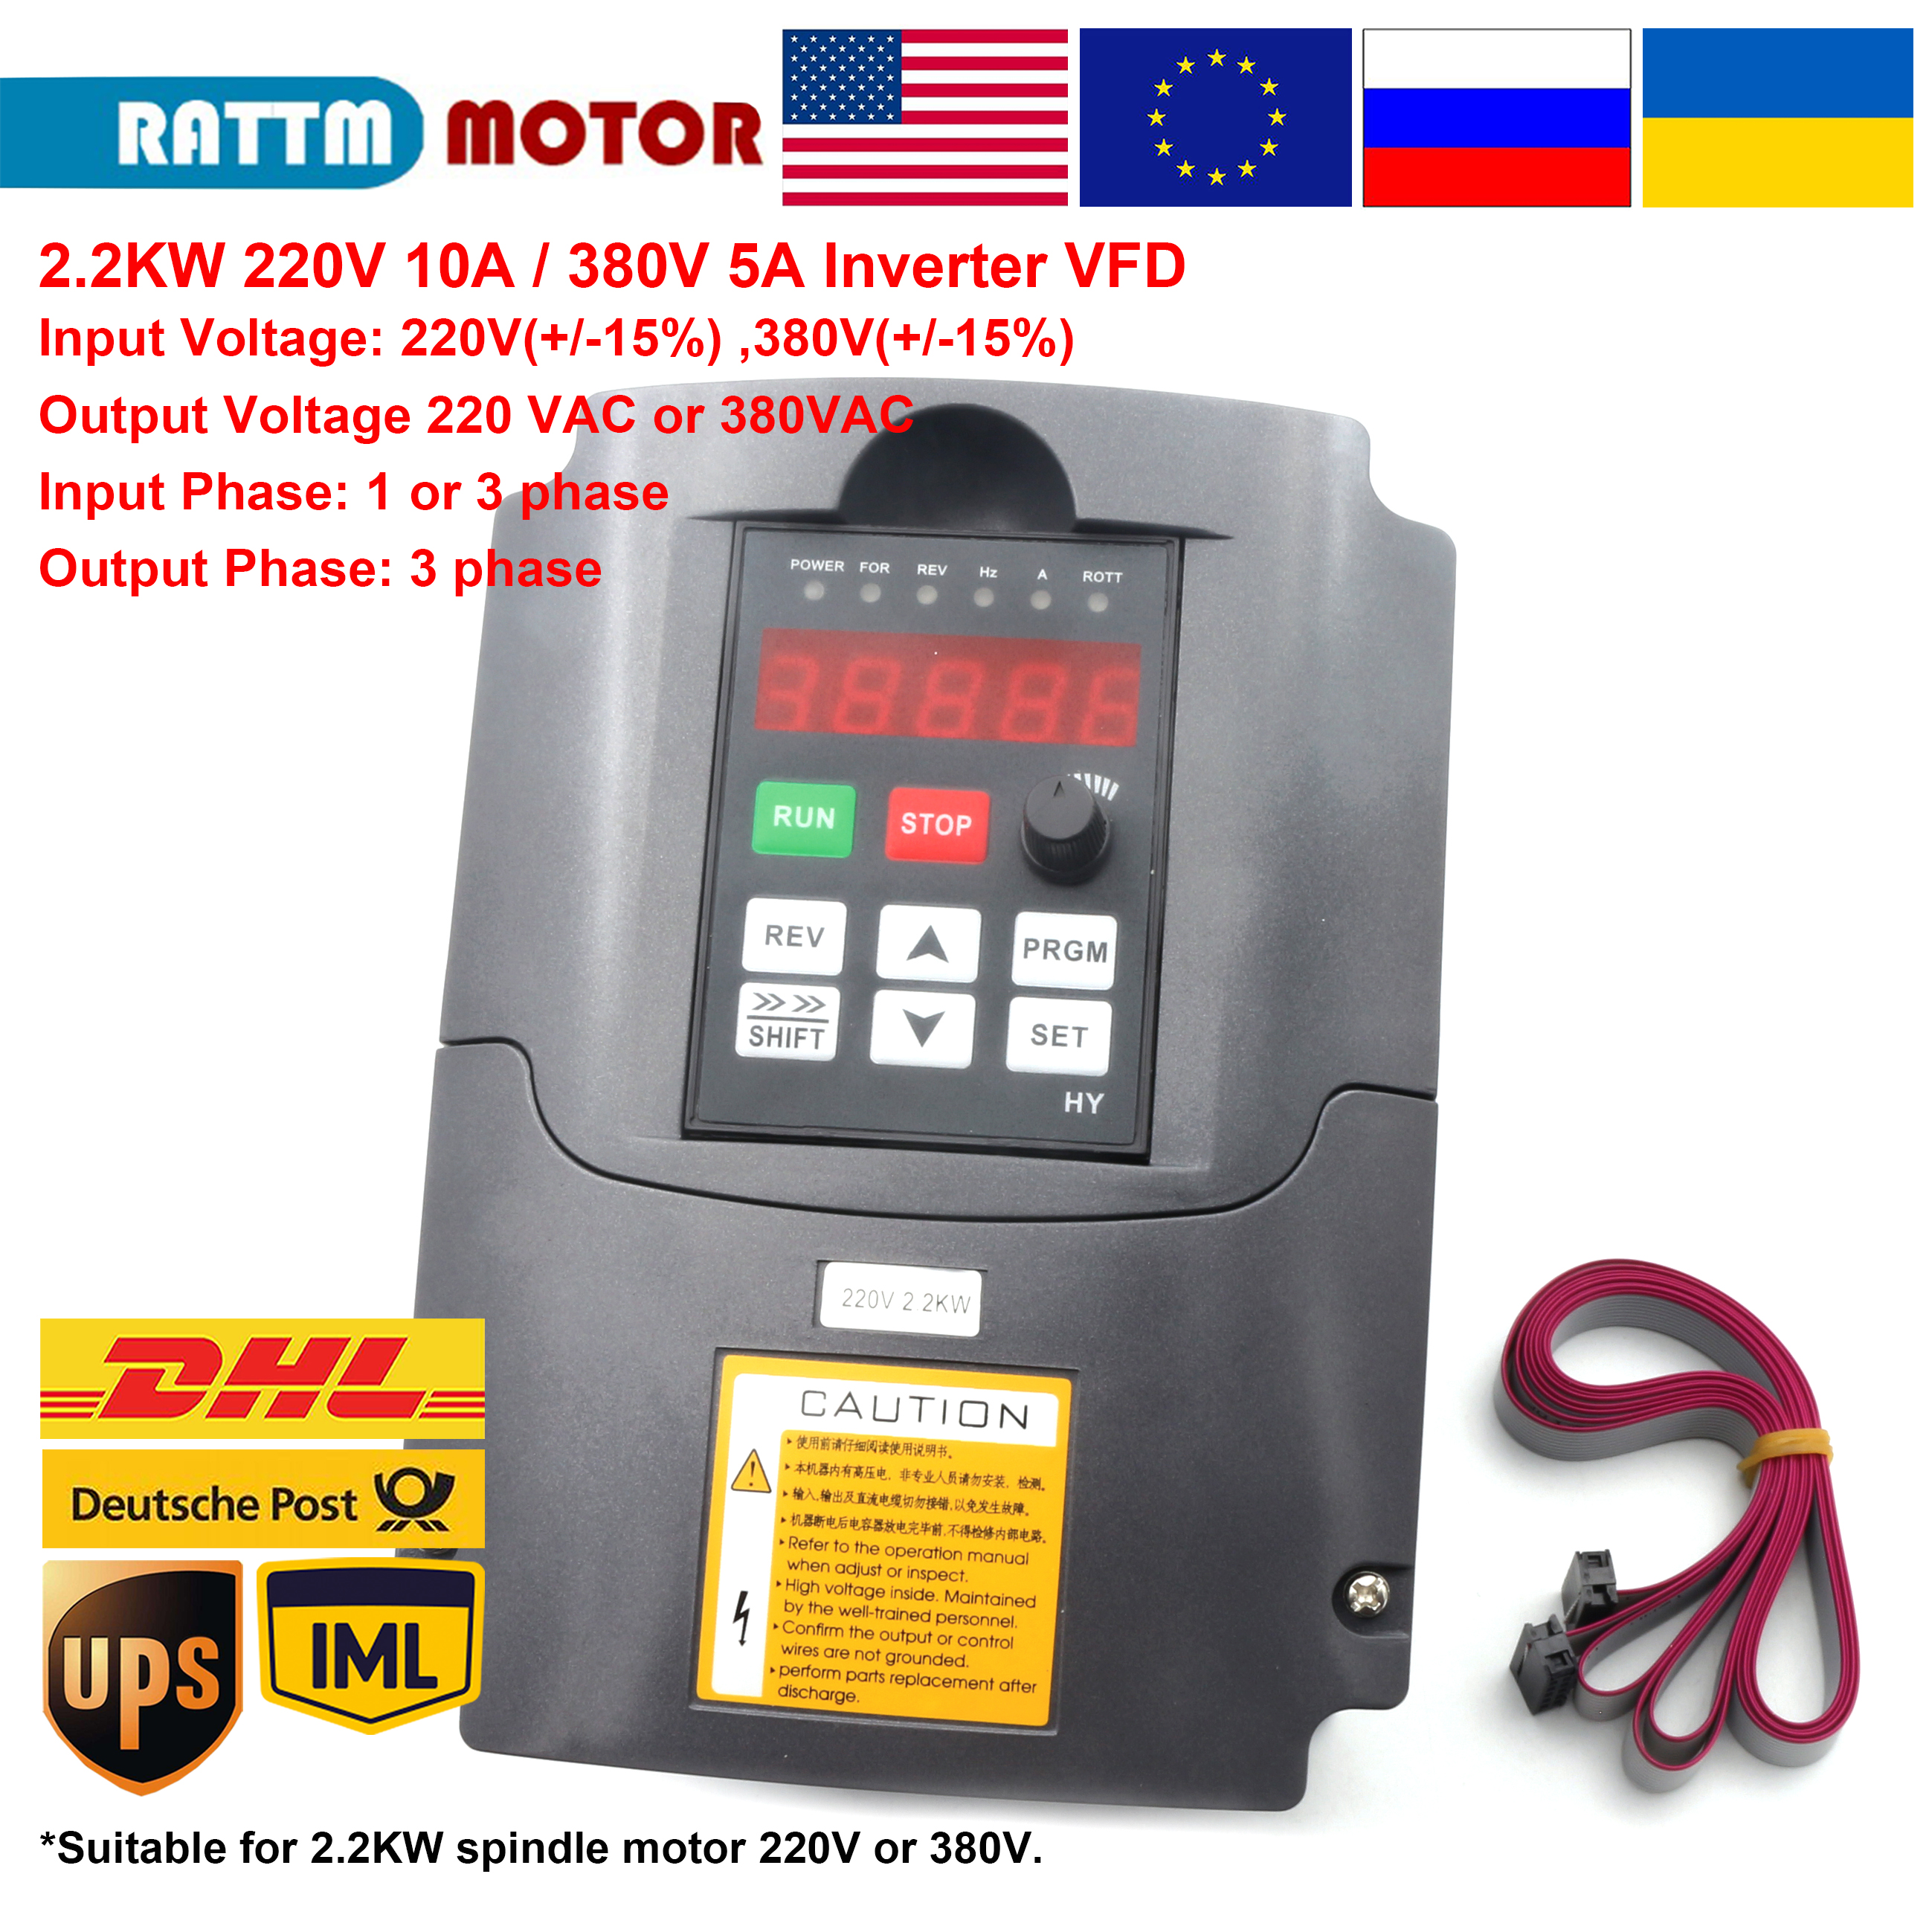 <font><b>220V</b></font> or 380V 2.2KW VFD <font><b>inverter</b></font> Variable Frequency <font><b>1</b></font> <font><b>Phase</b></font> or <font><b>3</b></font> <font><b>phase</b></font> Input 3HP Output with 2m cable cnc motor speed control image